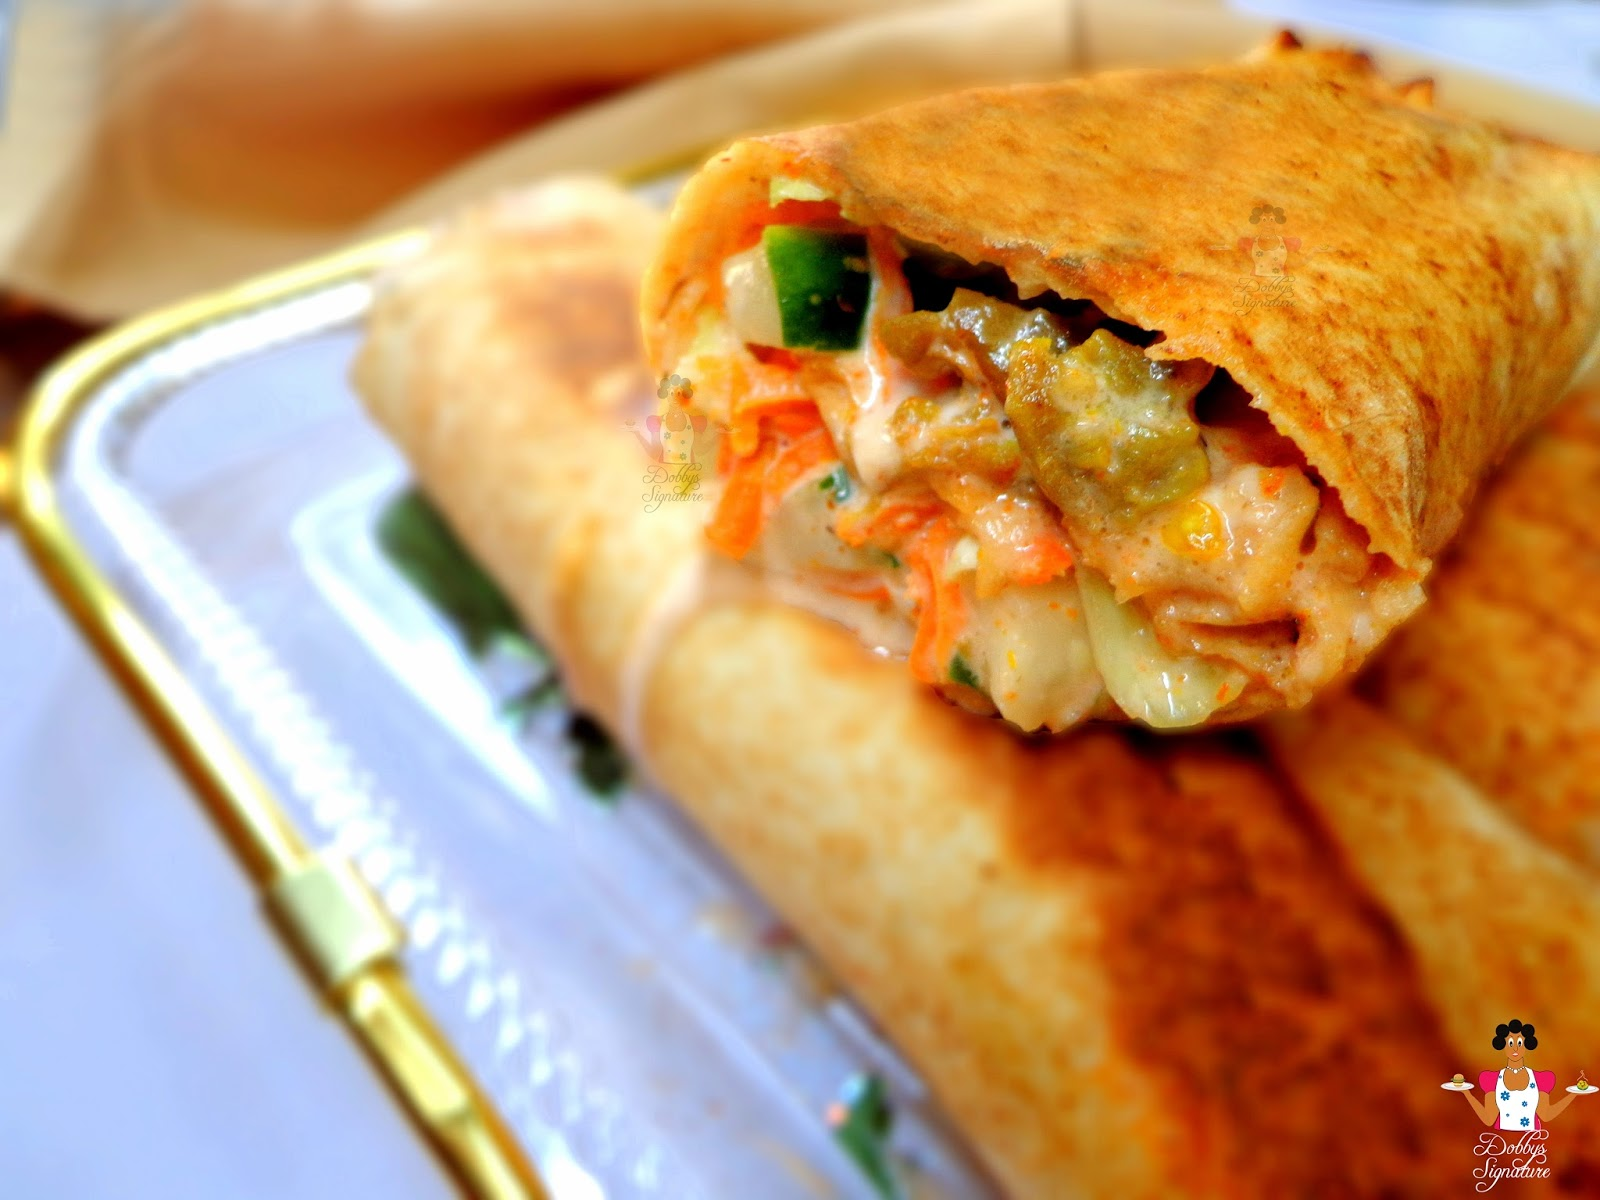 Dobbys signature nigerian food blog i nigerian food recipes i how to make beef shawarma at home nigerian style forumfinder Image collections